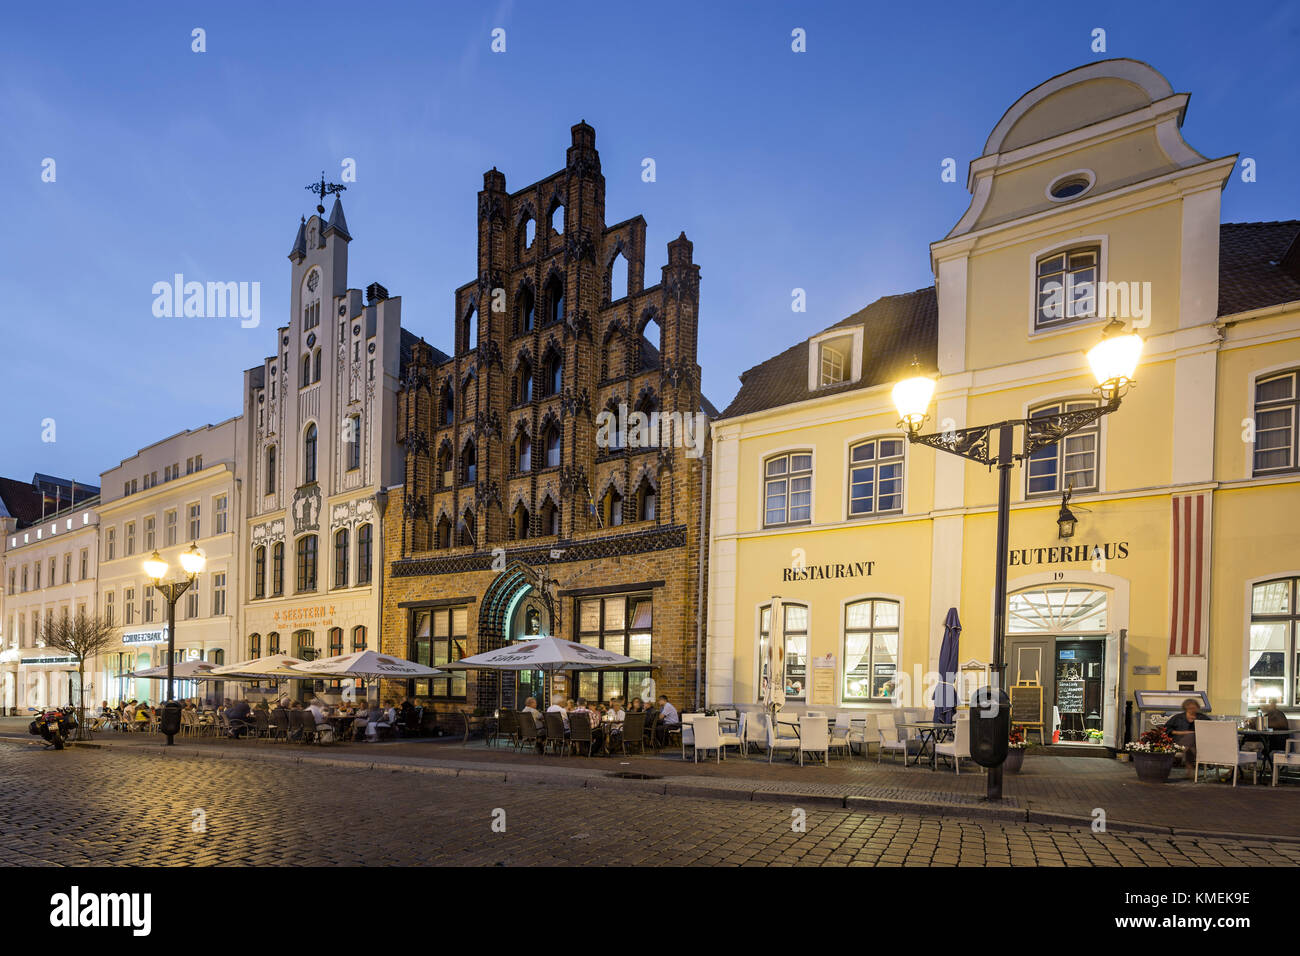 Pavement Cafes in front of old warehouse Alter Schwede, Wismar, Germany Stock Photo